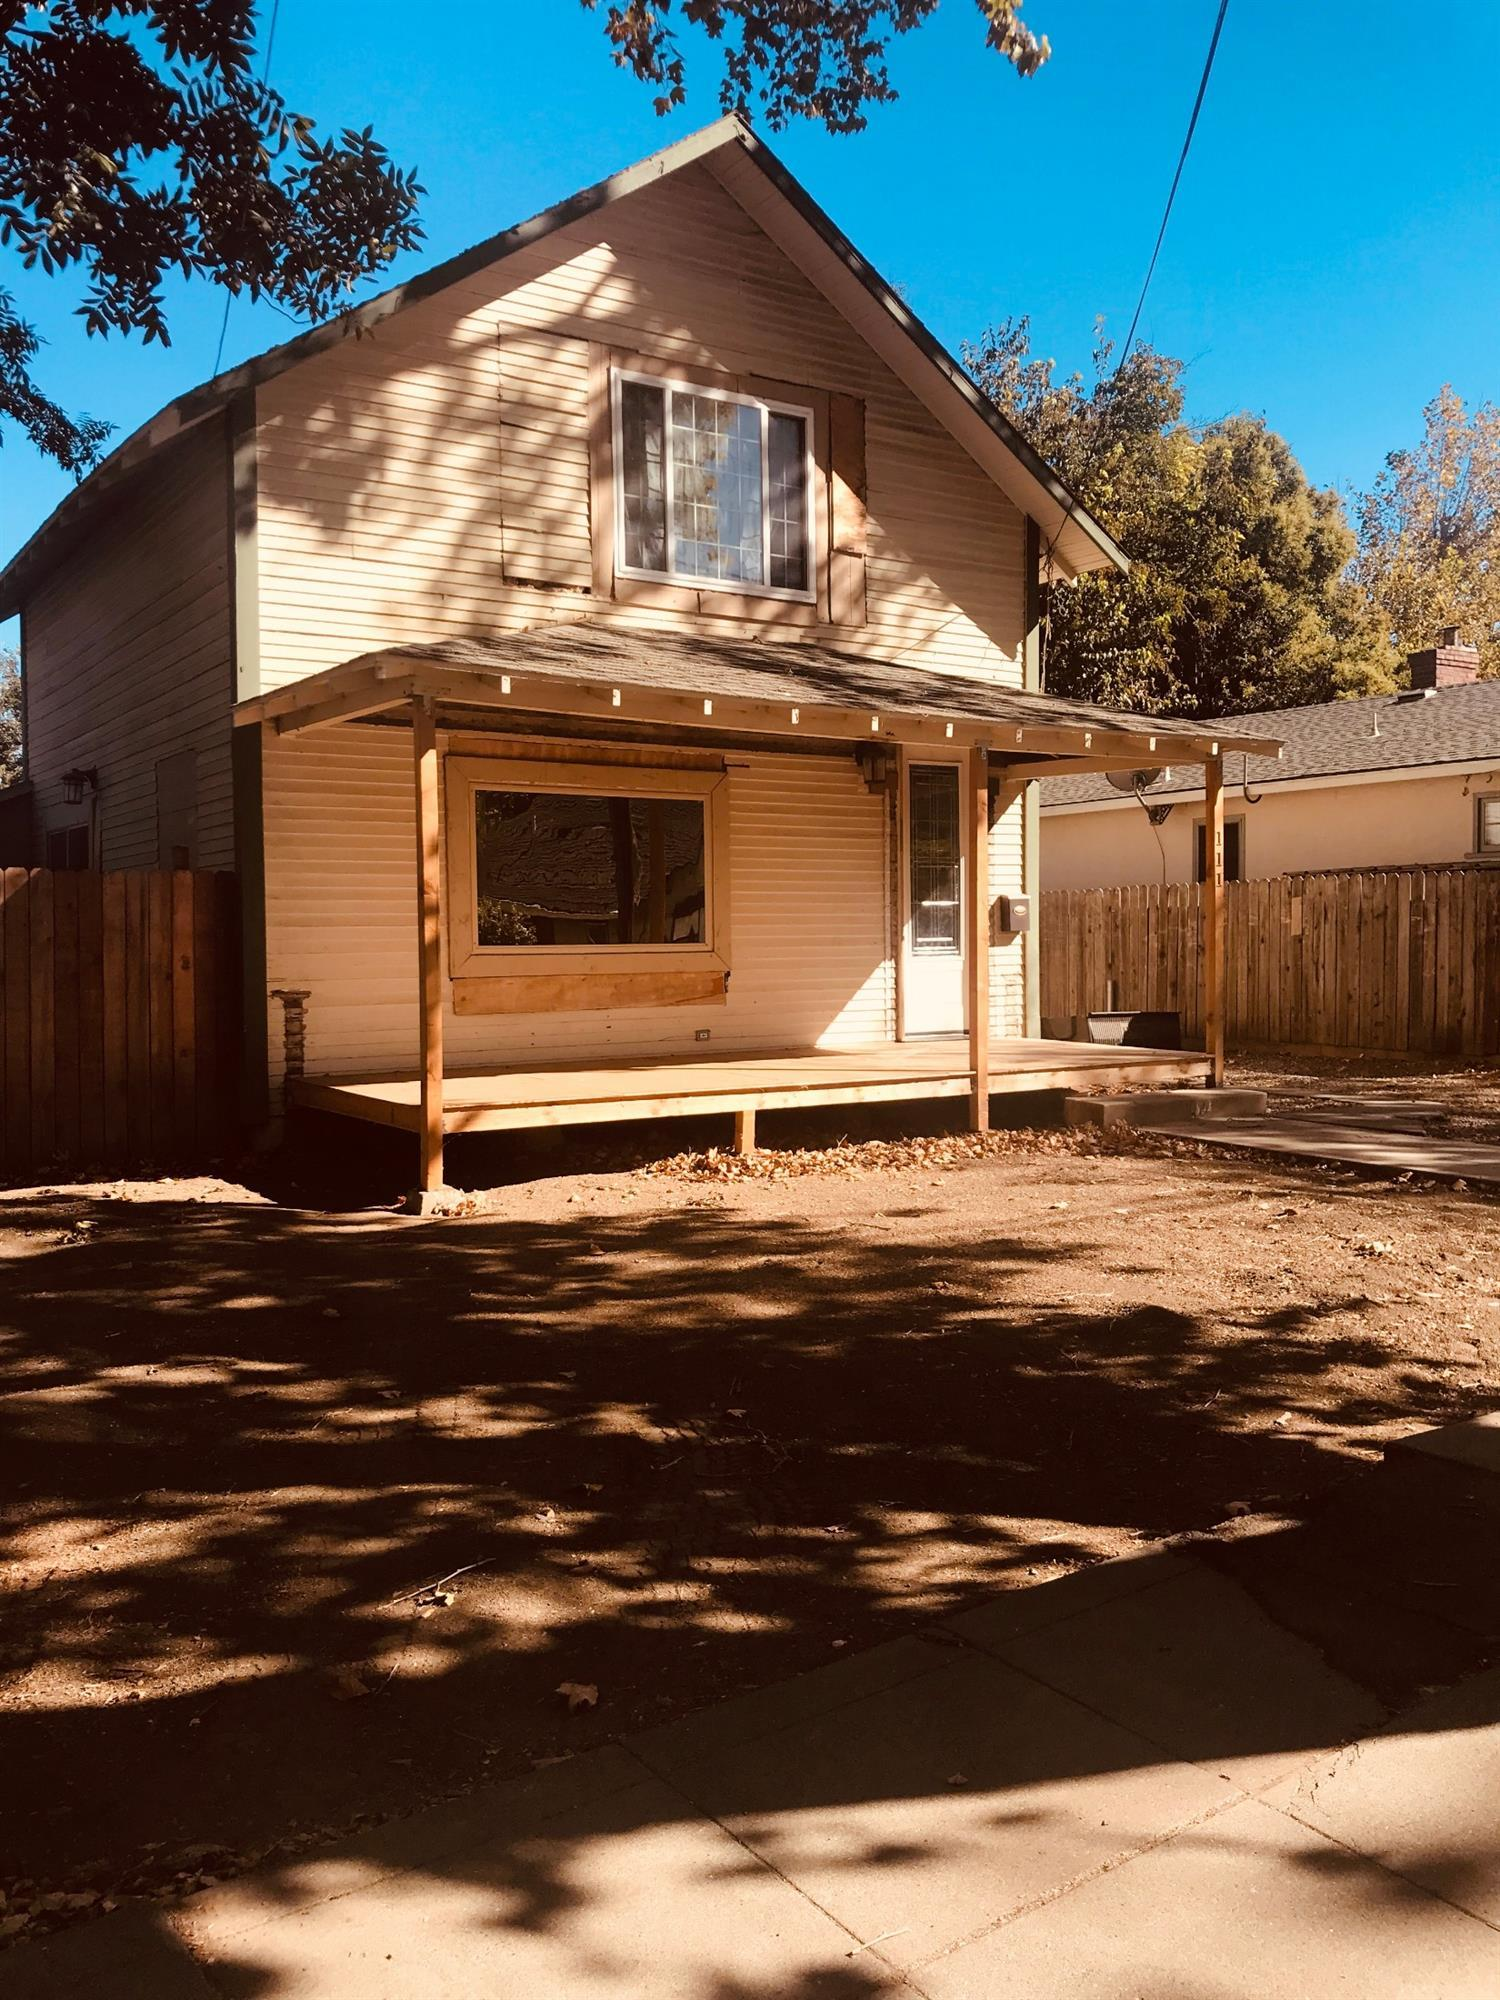 Woodland Real Estate — Homes for Sale in Woodland CA — ZipRealty